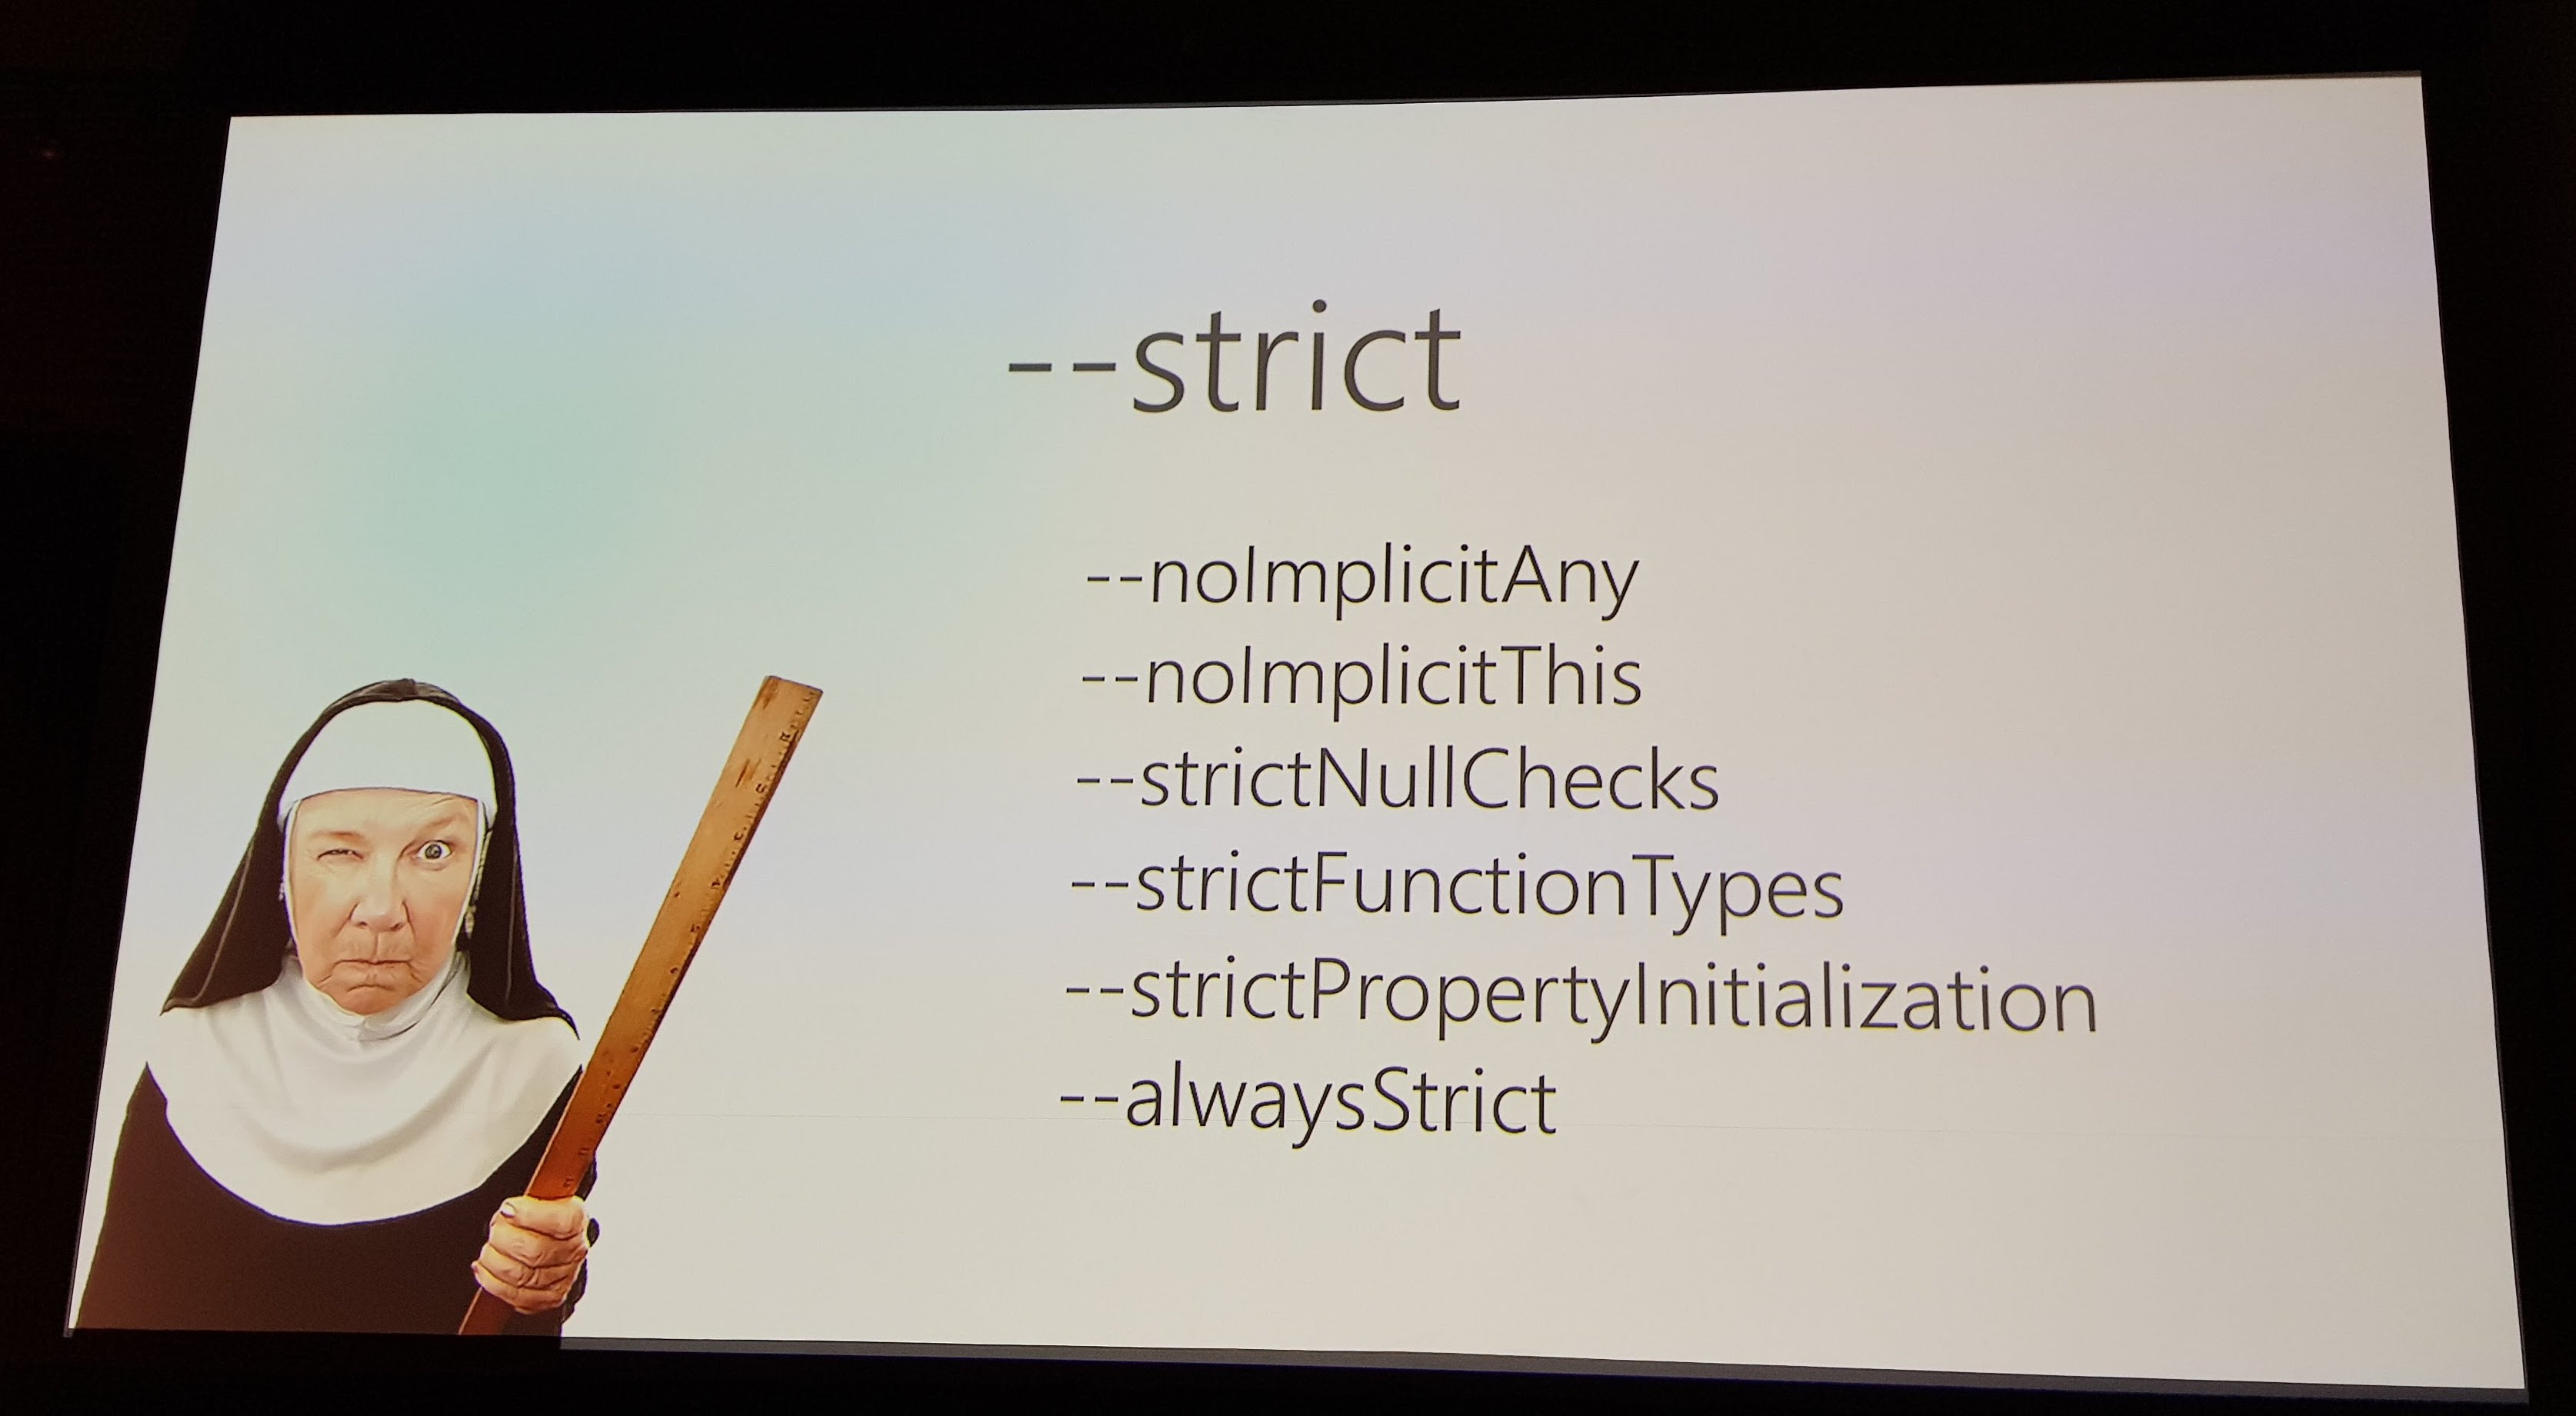 A slide showing a nun with a ruler and talking about strict mode in TypeScript